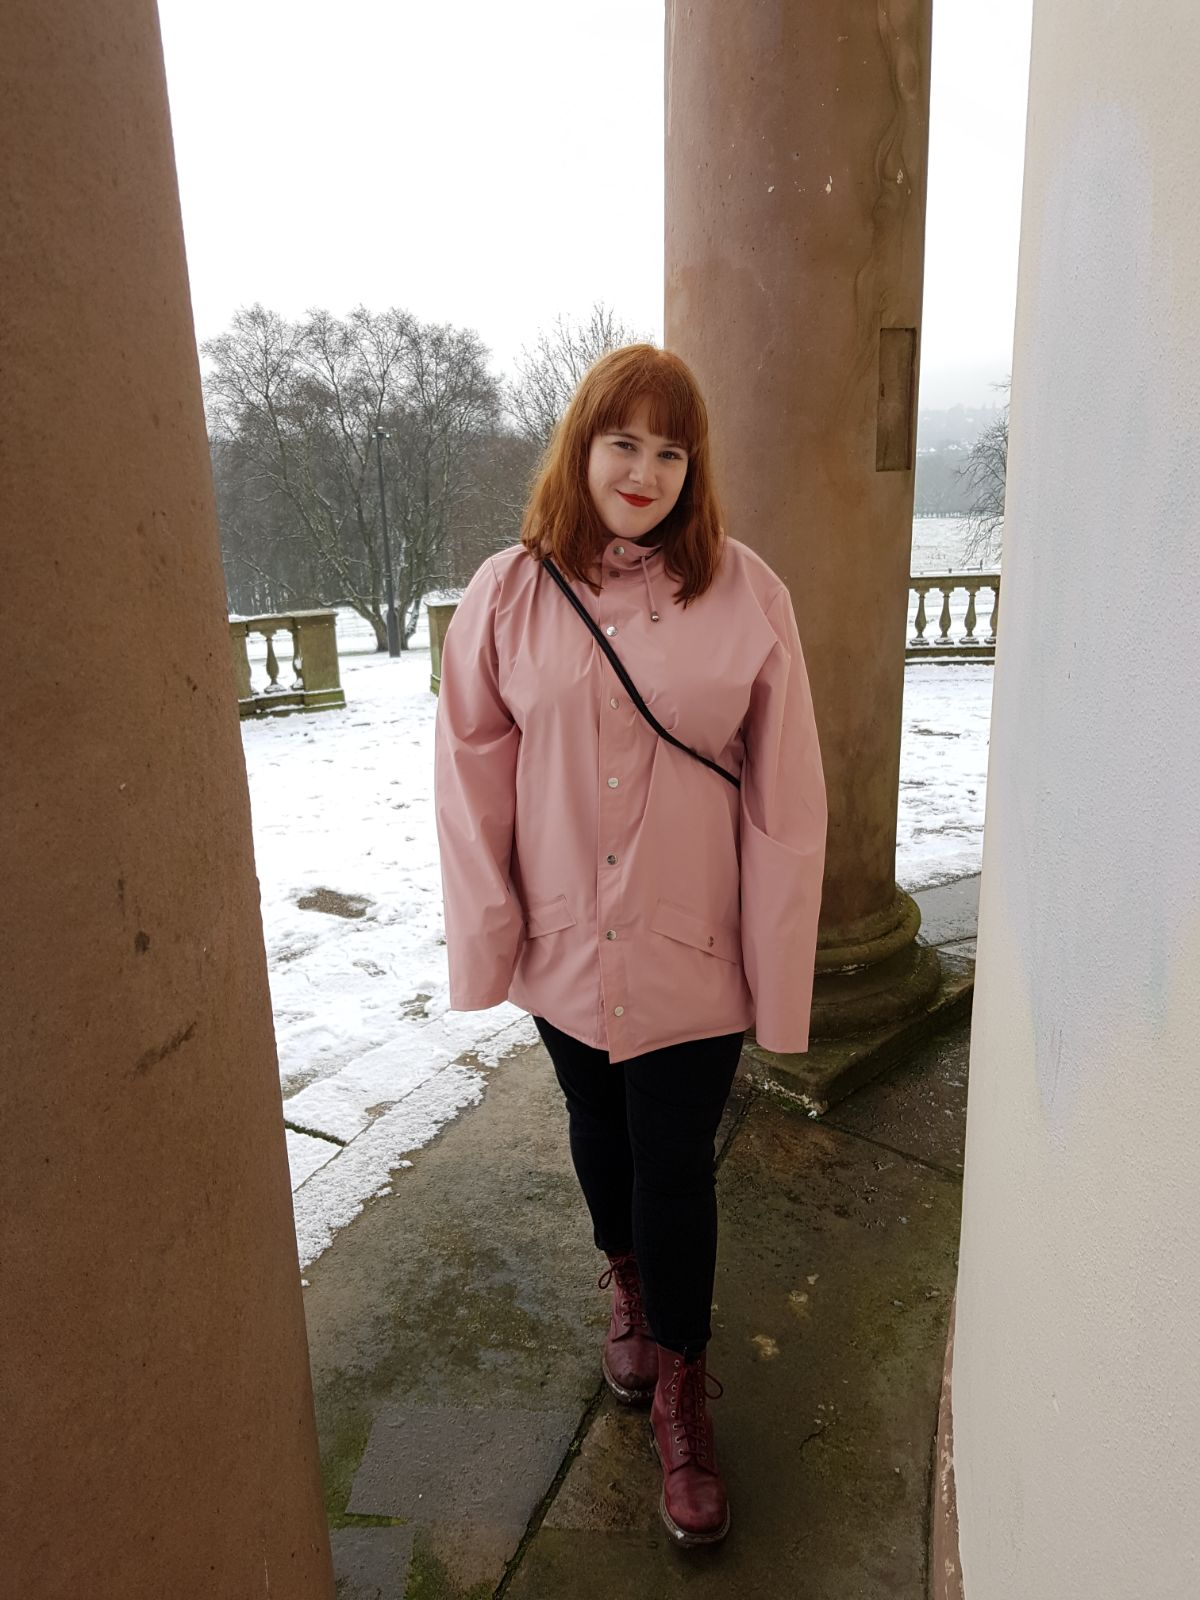 Big pink raincoat, Heaton Park in the snow, December 2017